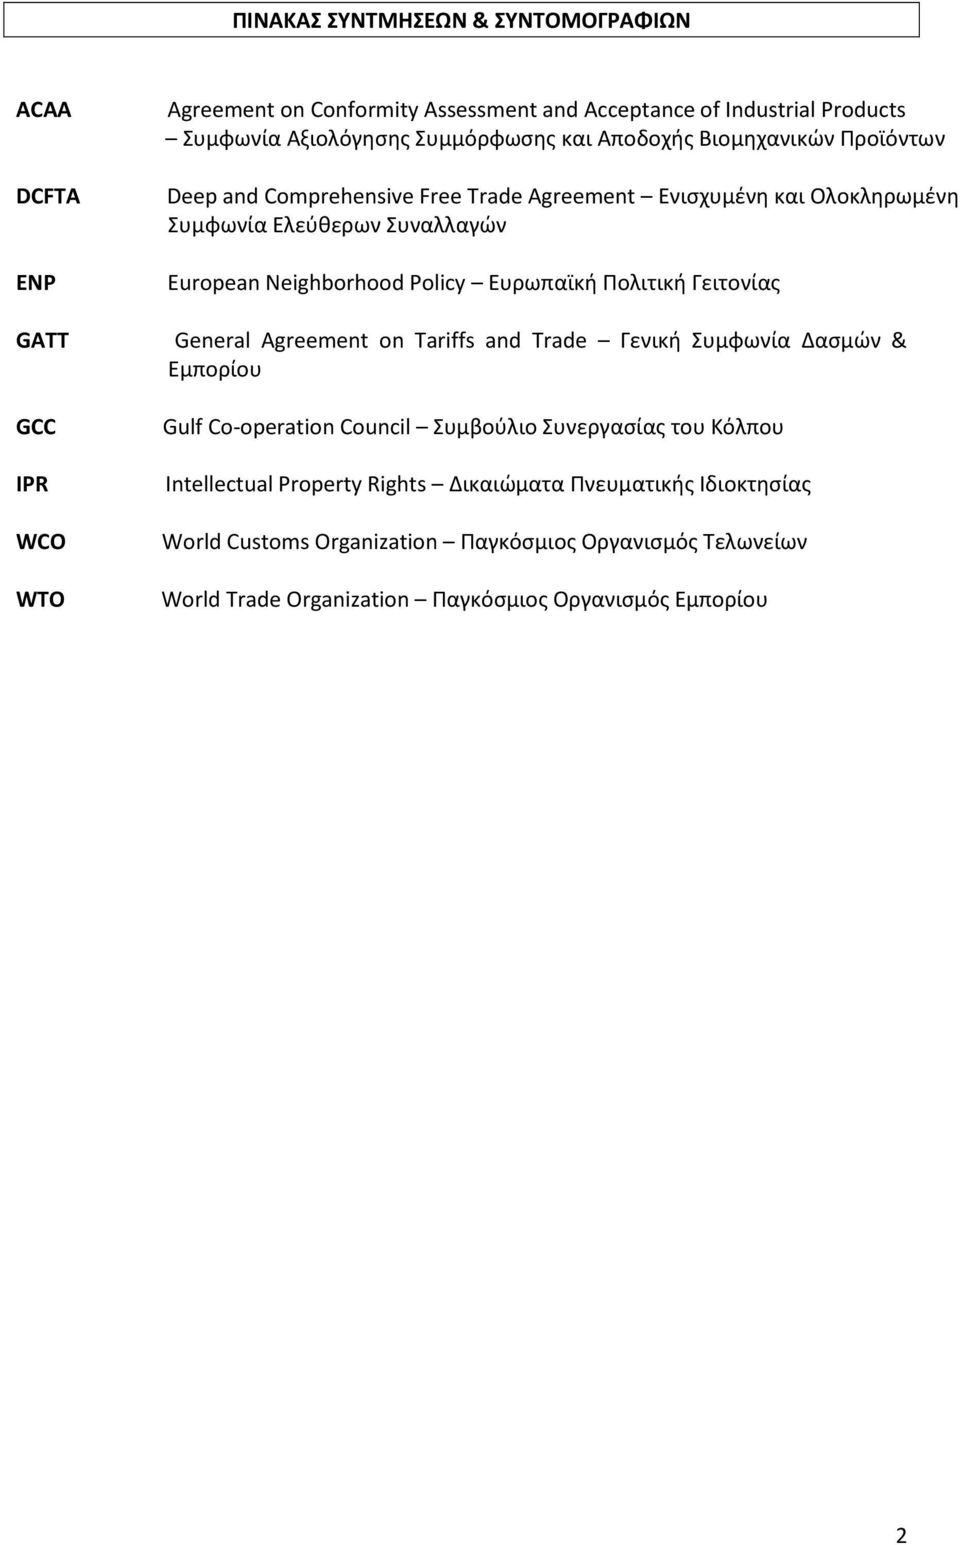 Policy Ευρωπαϊκή Πολιτική Γειτονίας General Agreement on Tariffs and Trade Γενική Συμφωνία Δασμών & Εμπορίου Gulf Co-operation Council Συμβούλιο Συνεργασίας του Κόλπου